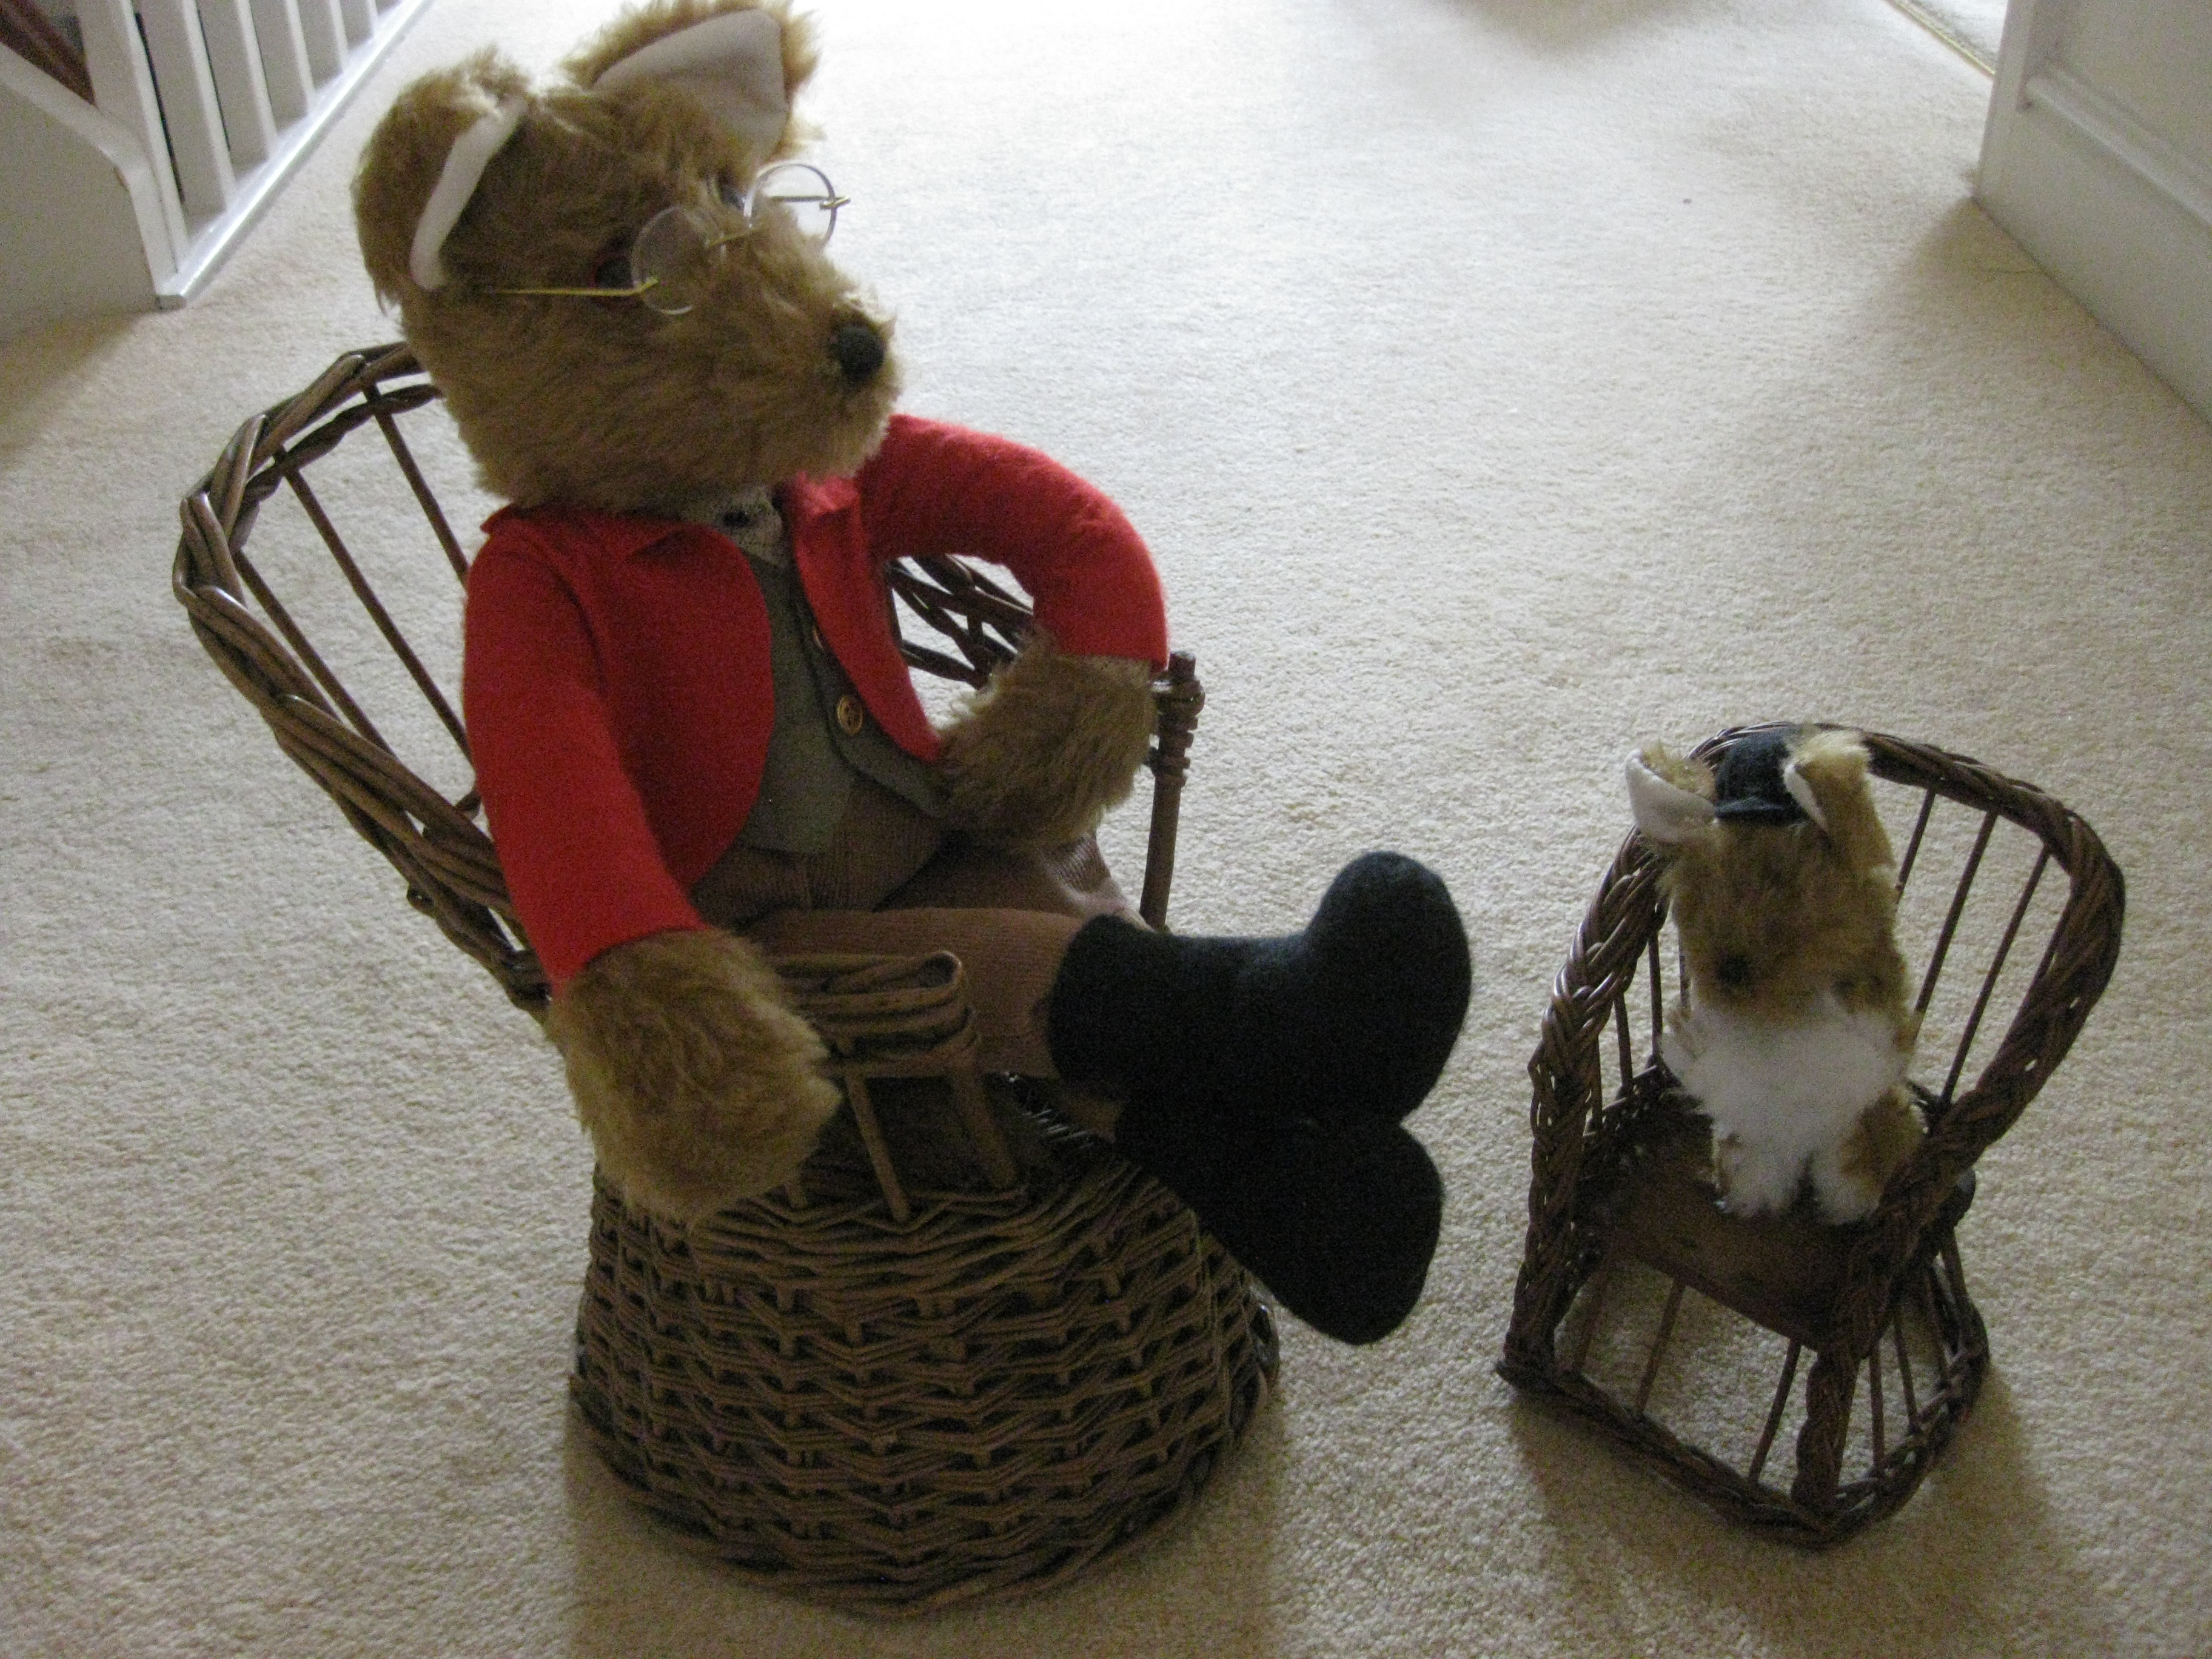 Little Basket Chairs made by Uncle Joe